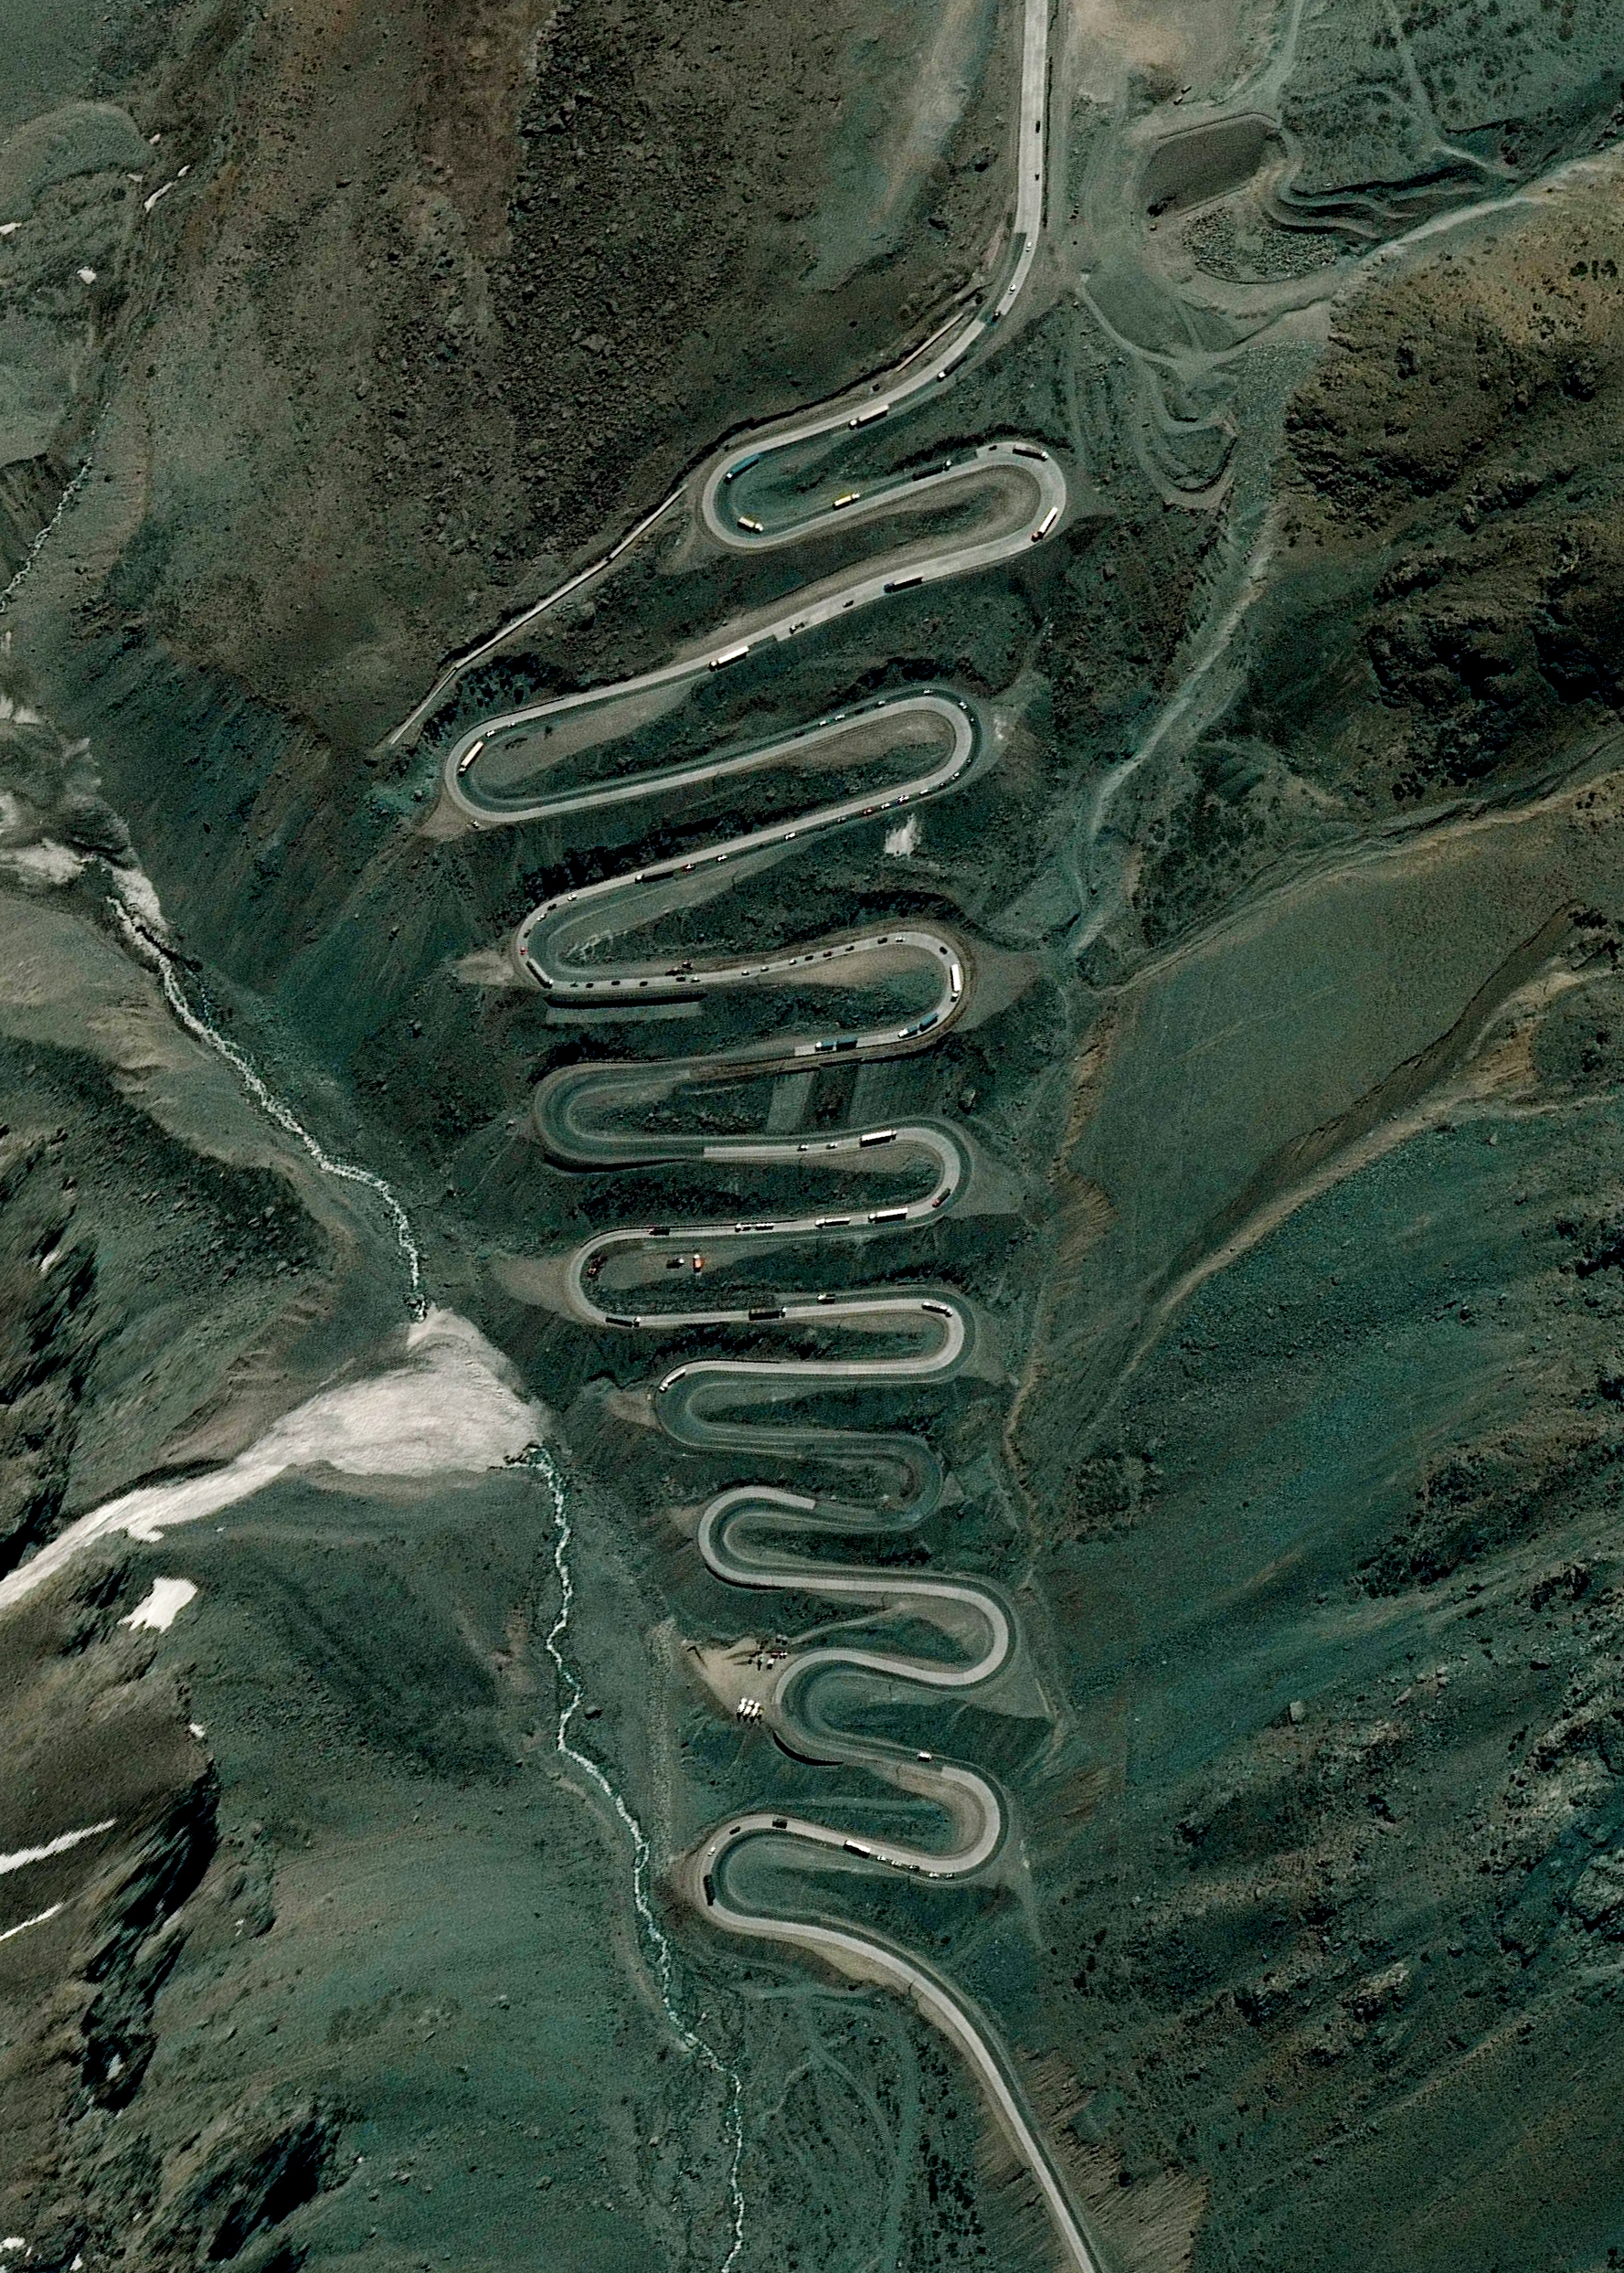 """1/7/2016   Los Caracoles Pass   Andes Mountains  32°51'6""""S 70°8'16""""W    Los Caracoles Pass, or The Snails Pass, is a twisting mountain road located in a remote section of the Andes Mountains on the Chilean side of the border with Argentina. The path climbs to an elevation of 10,419 feet, has no roadside safety barriers, and is frequented by large trucks."""